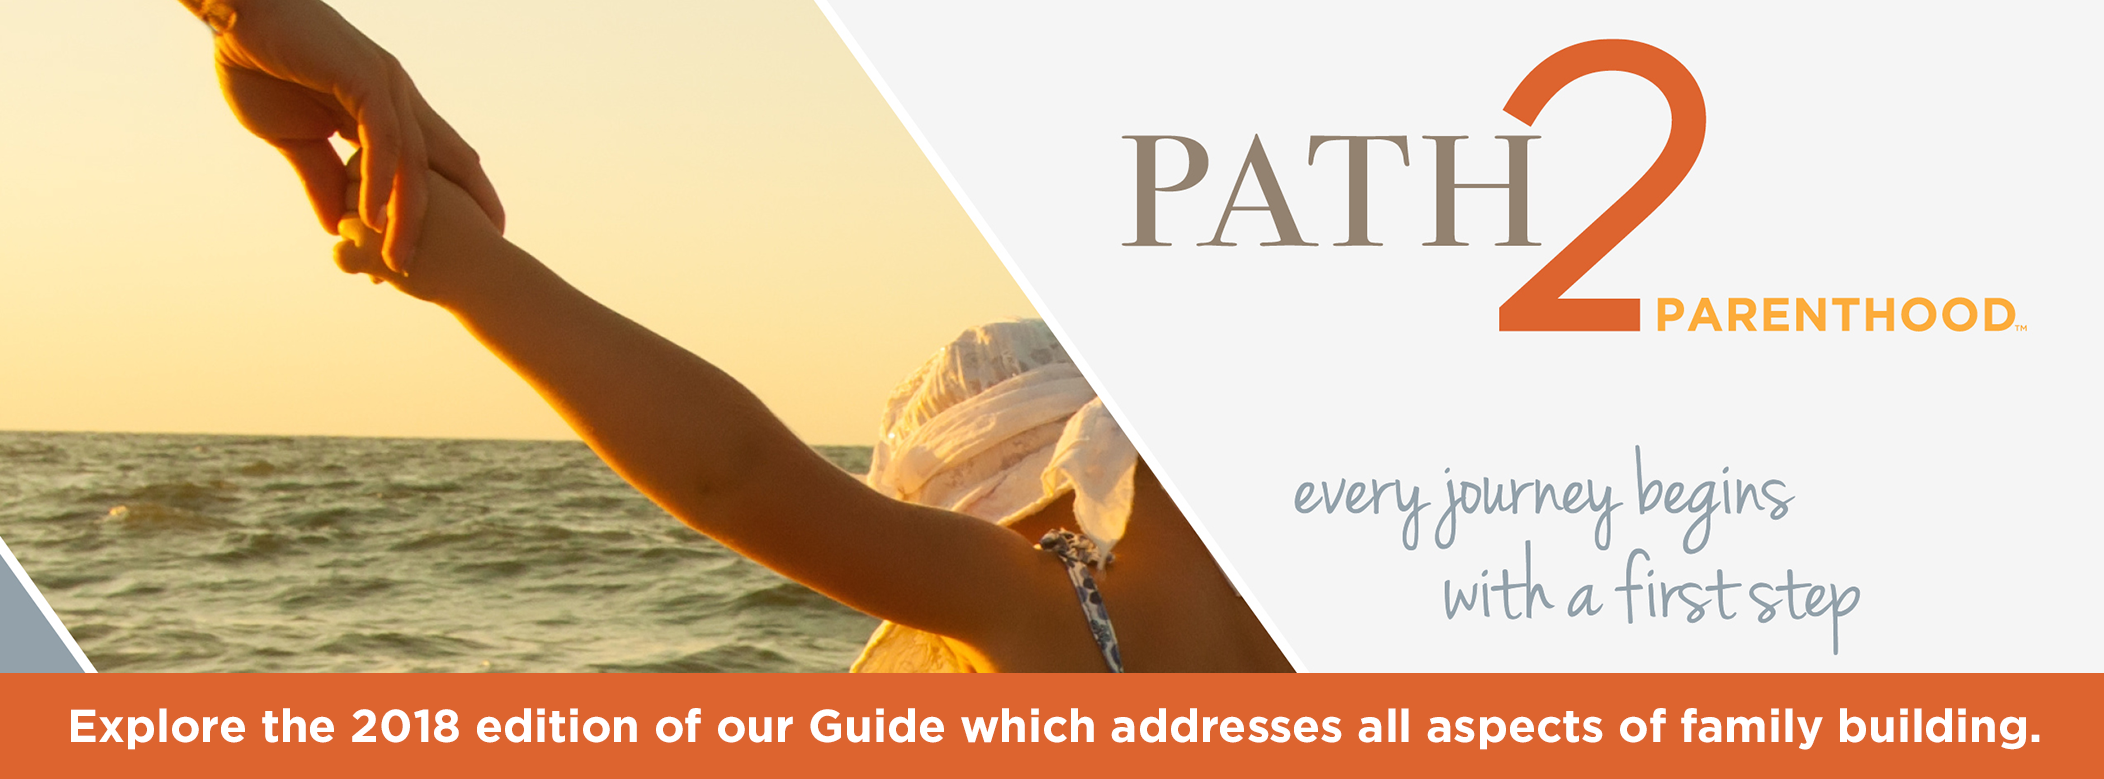 Path2 Parenthood Directory Cover2018